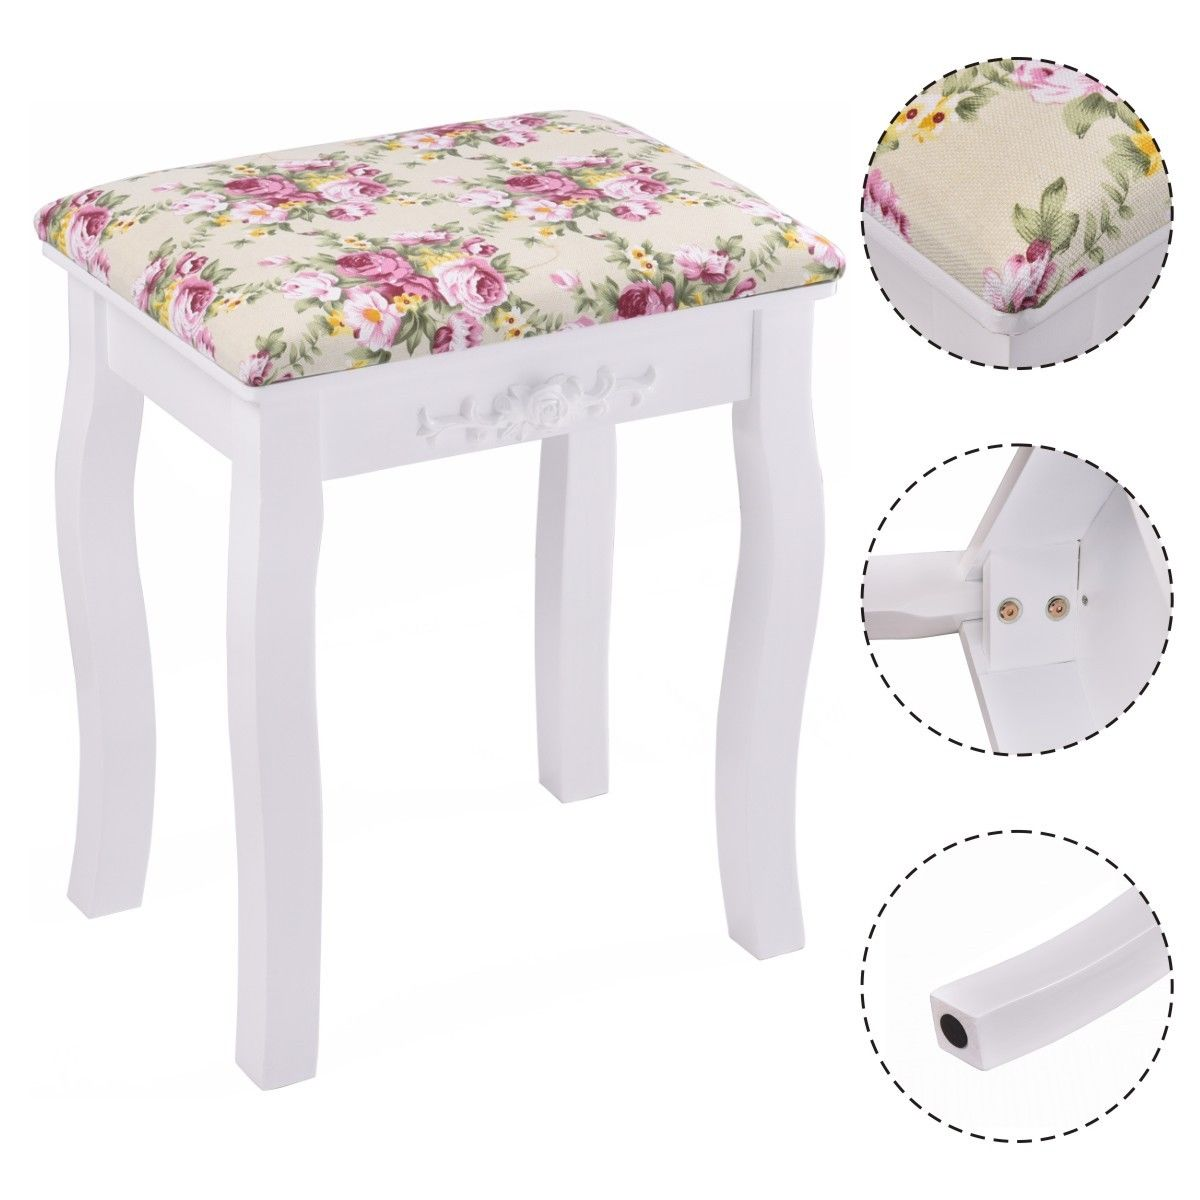 Product Image Costway White Vanity Wood Dressing Stool Padded Chair Makeup  Bathroom W/ Rose Cushion